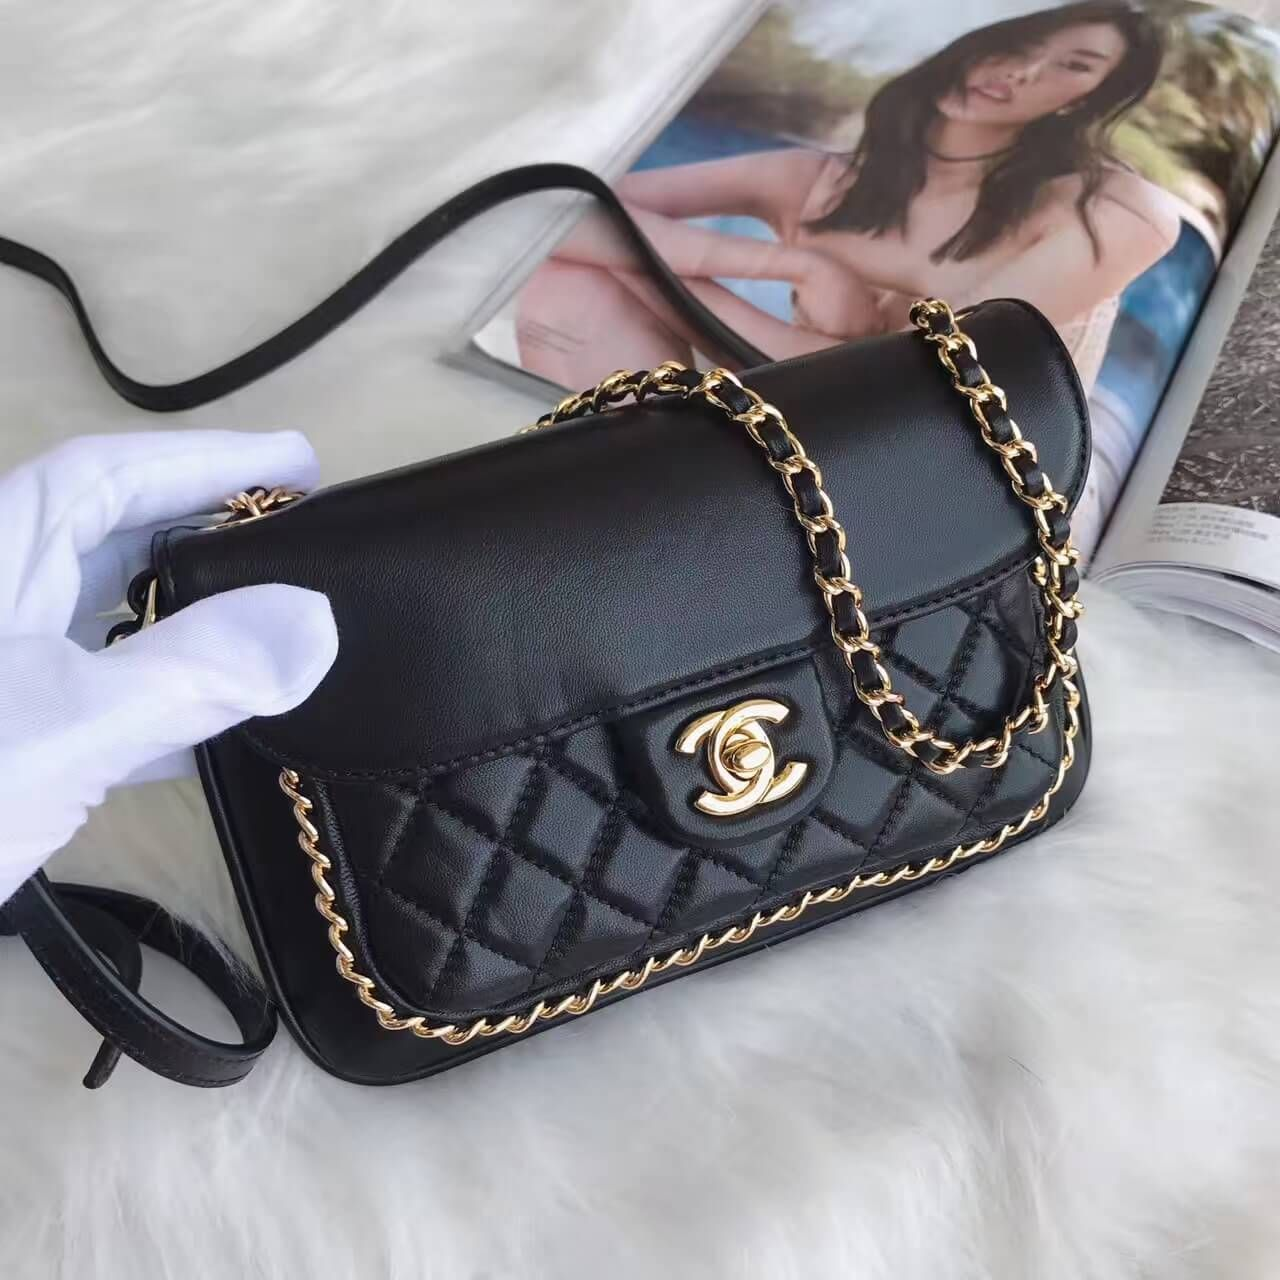 Chanel Cc Unchained Flap Bag In Black Lambskin A